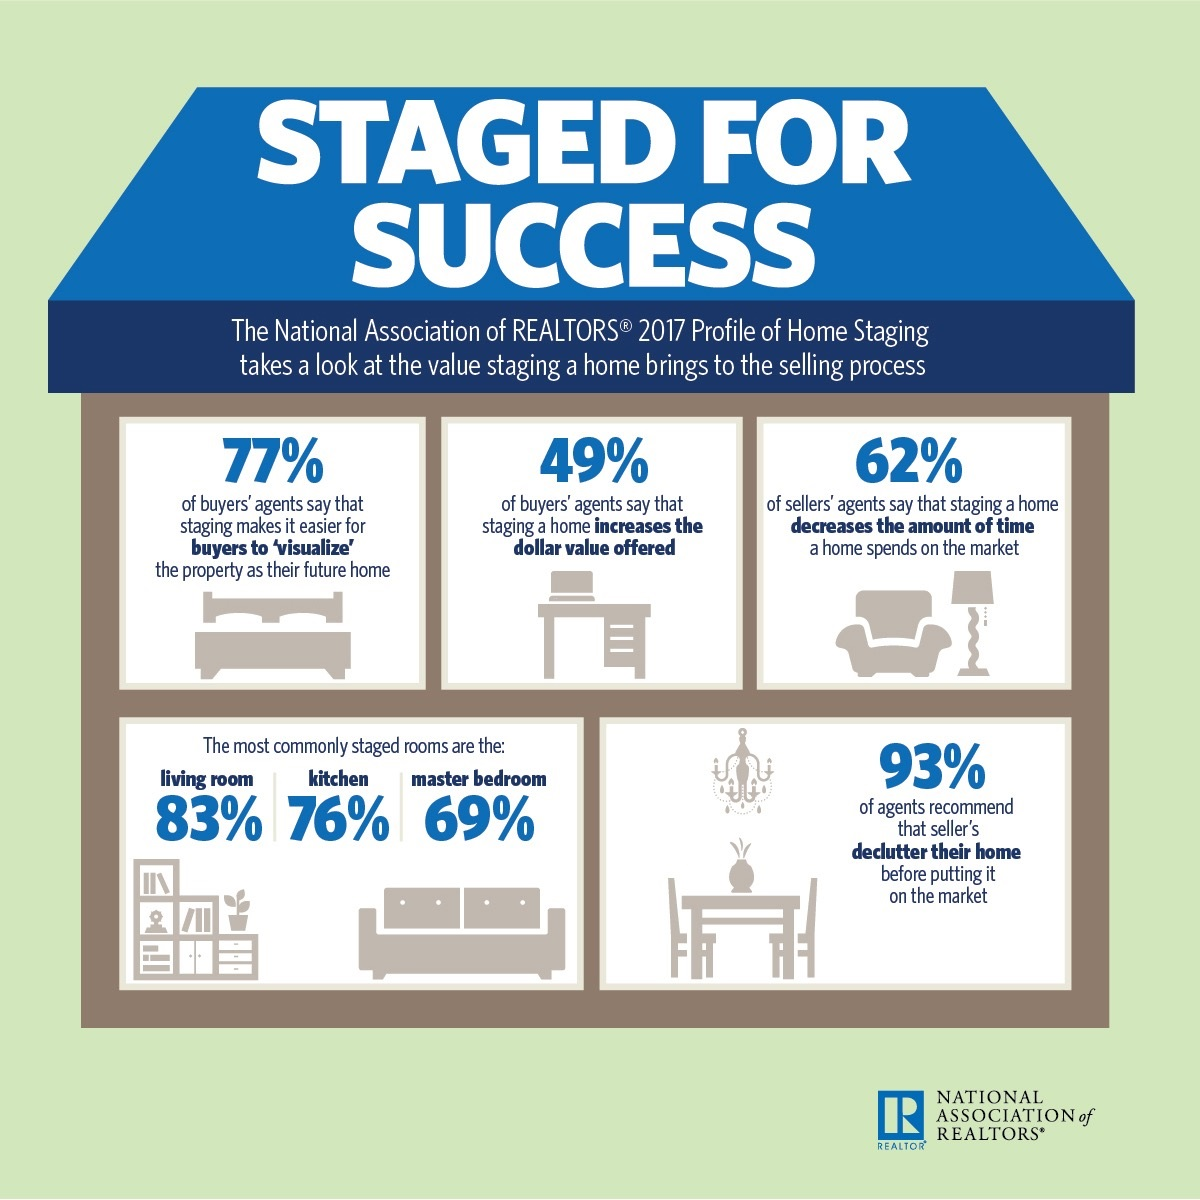 2017-home-staging-report-infographic-07-06-2017-1200w-1200h